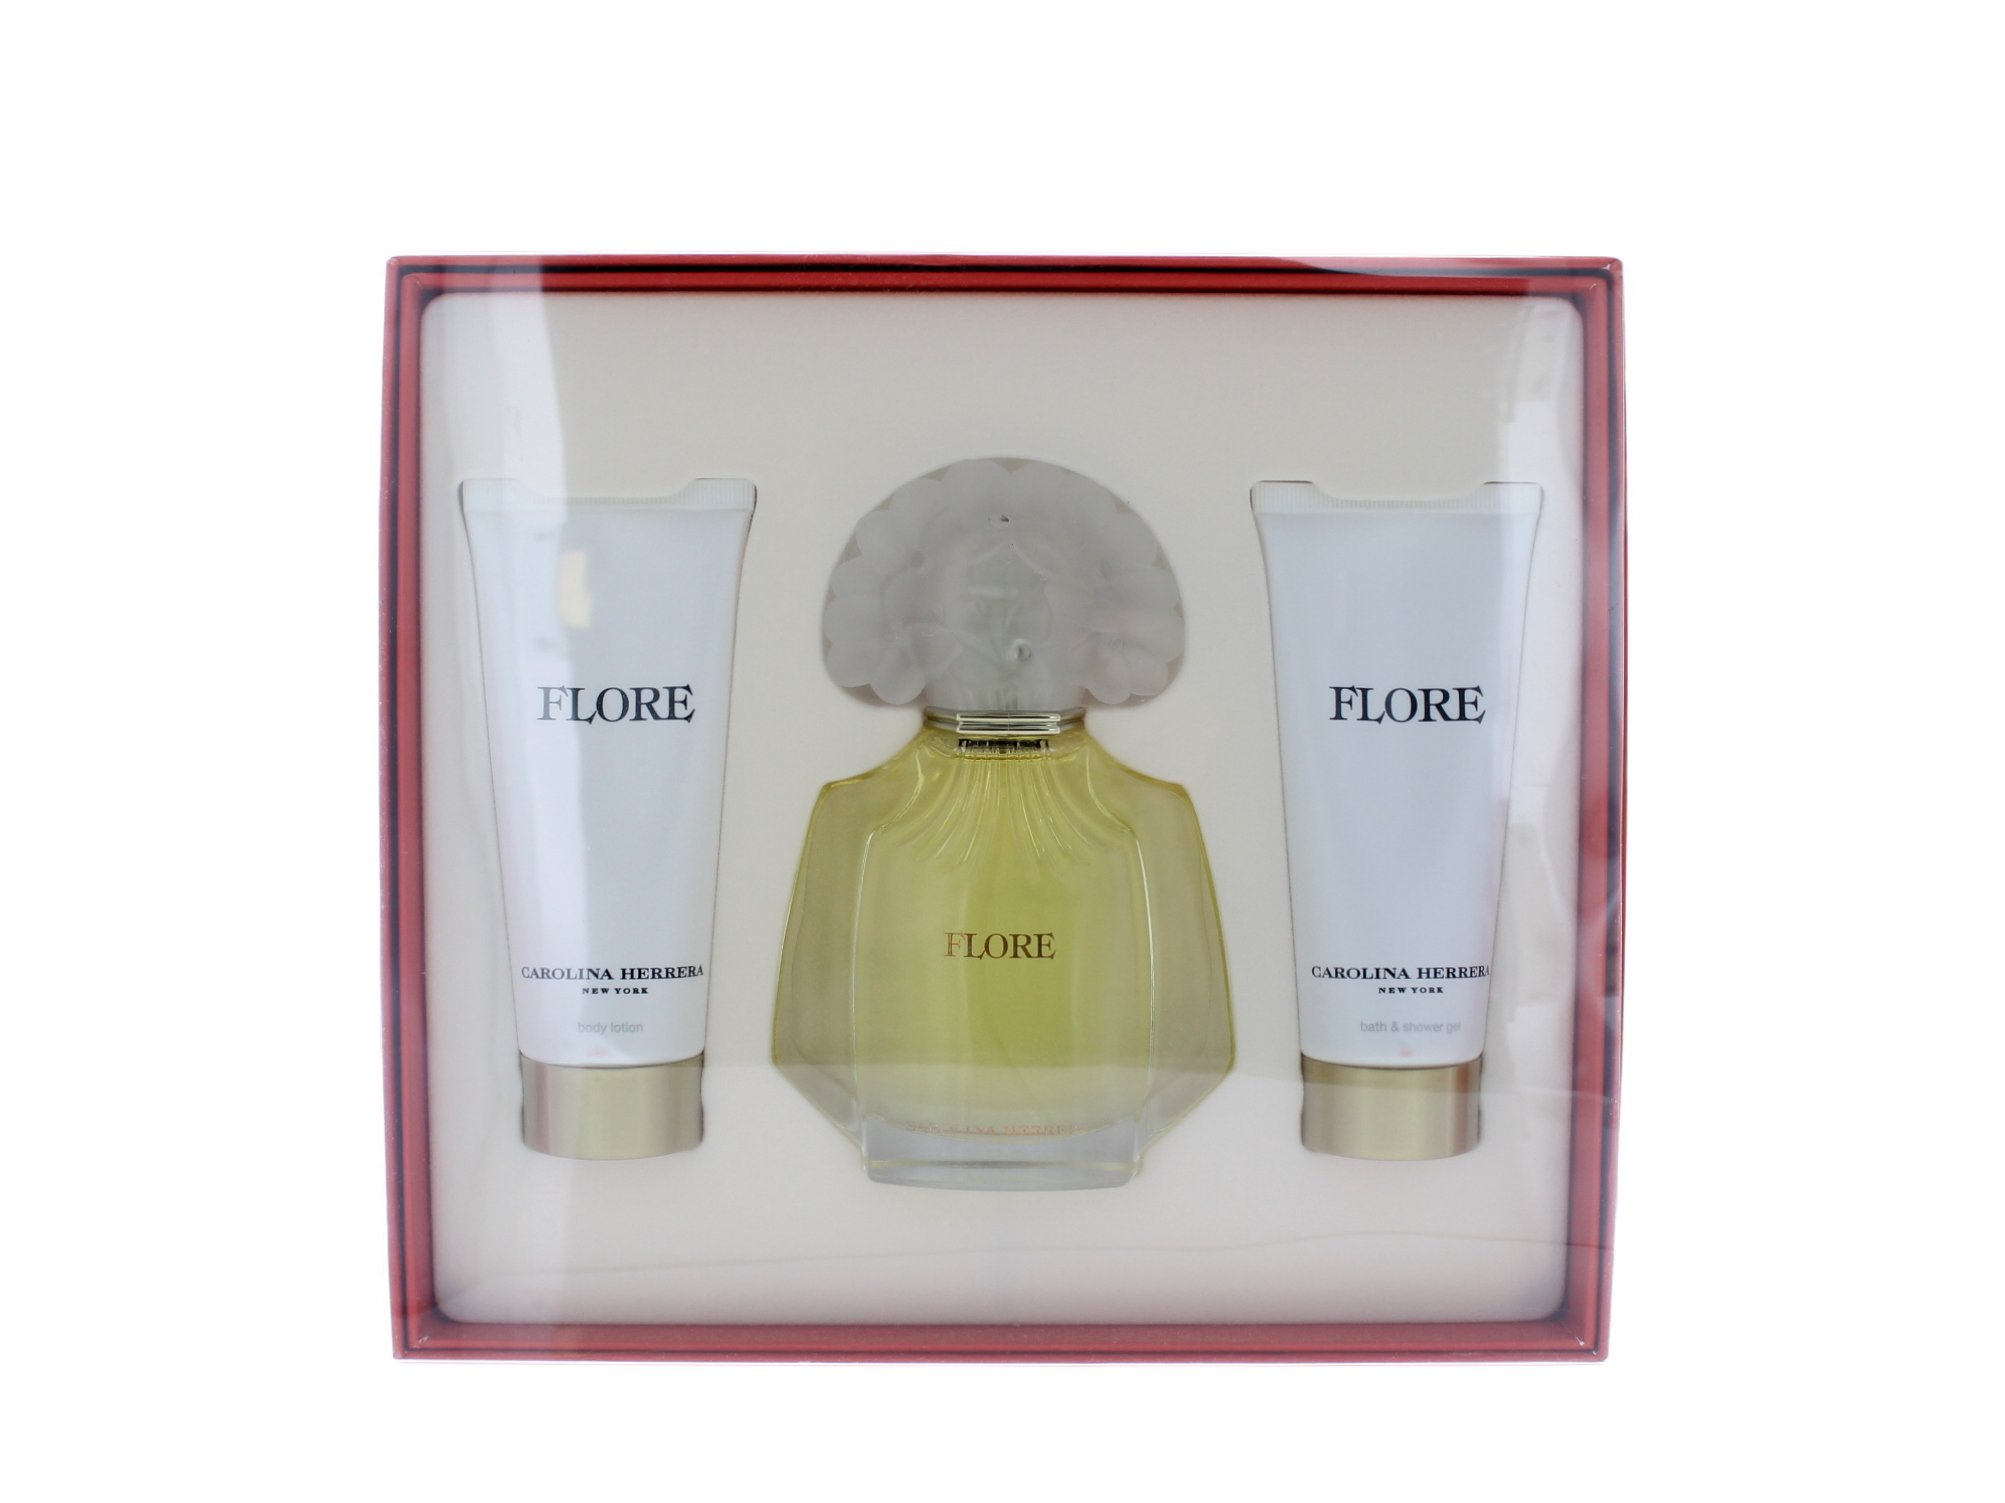 Flore By Carolina Herrera For Women. Set-eau De Parfum Spray 3.4 oz & Body Lotion 3.4 oz & Shower Gel 3.4 oz